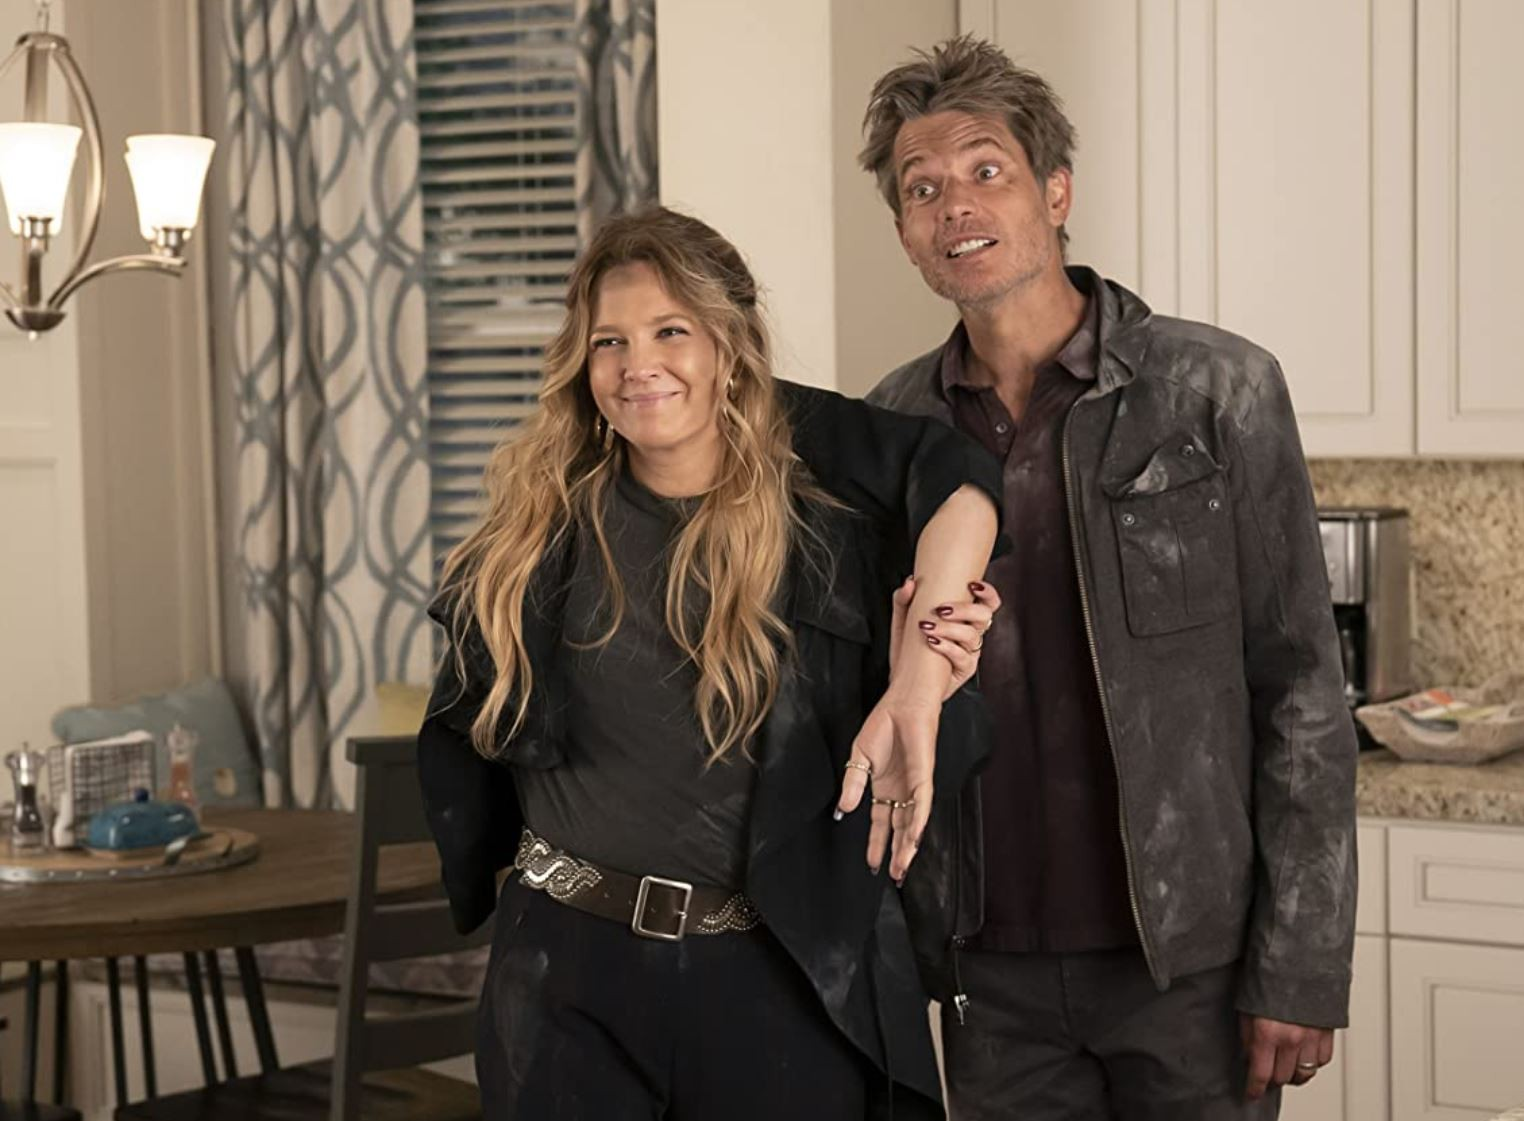 Drew Barrymore and Timothy Olyphant in Santa Clarita Diet